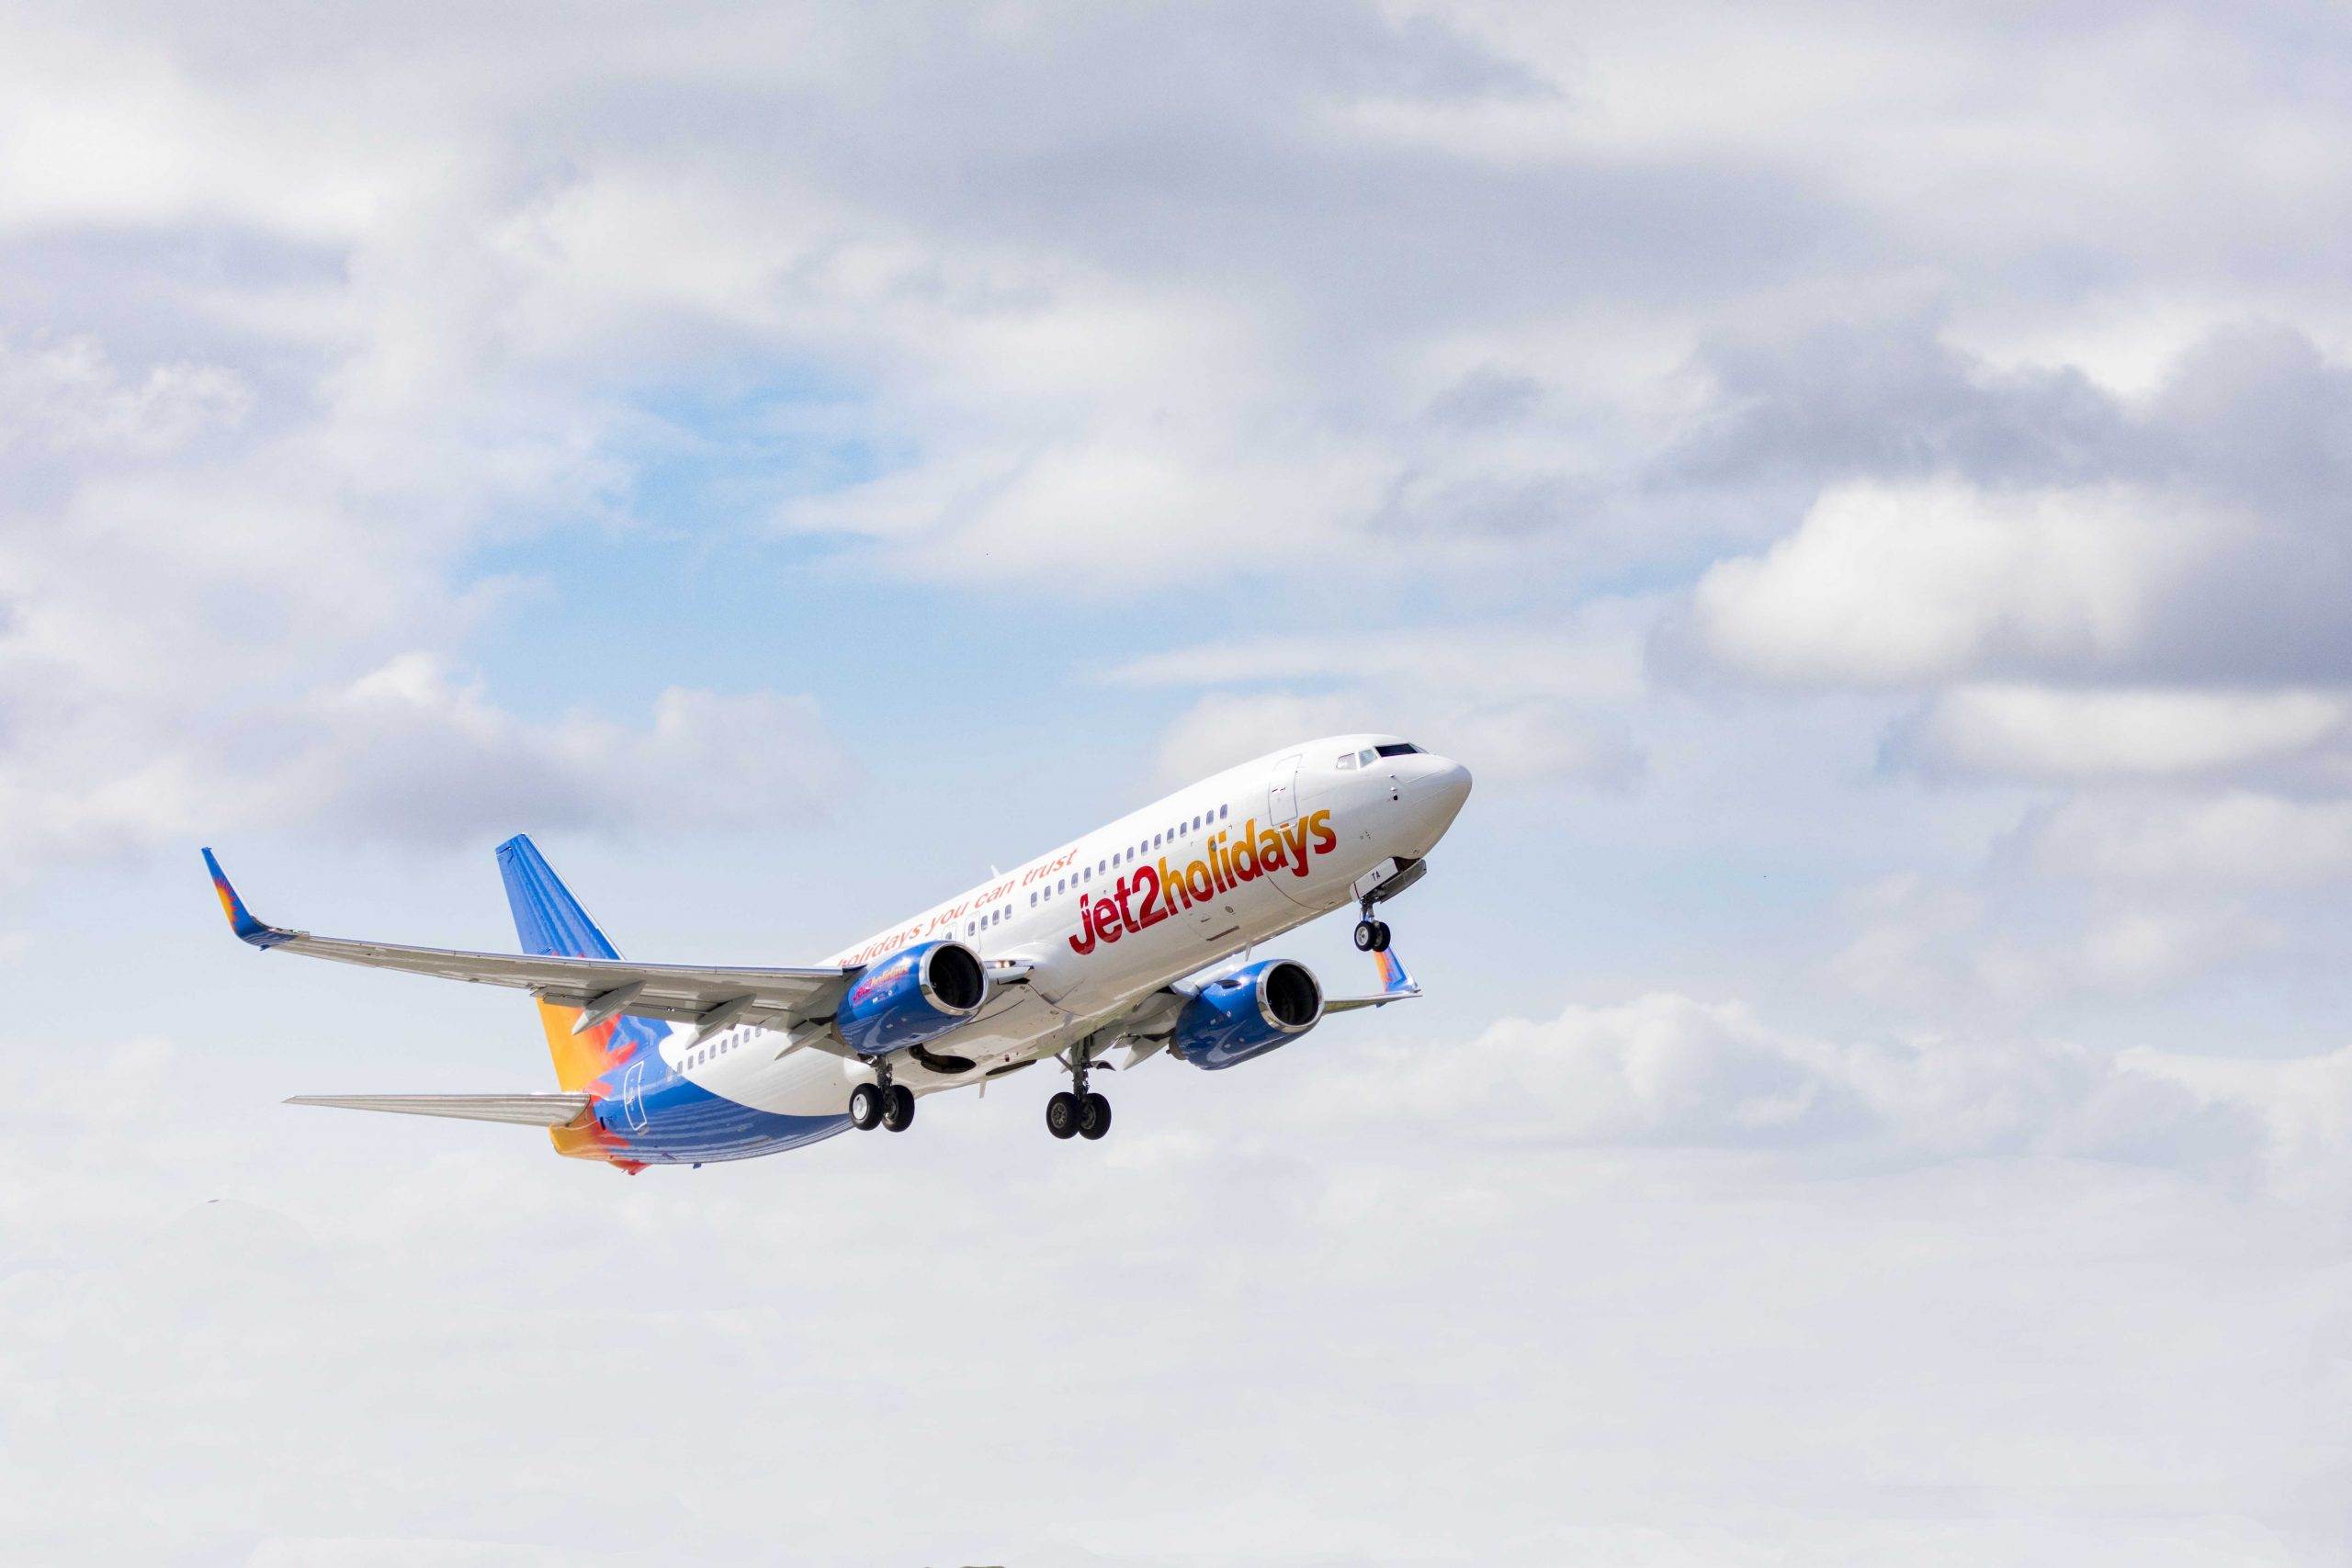 Jet2holidays gives the gift of holidays this Christmas with Present Drop